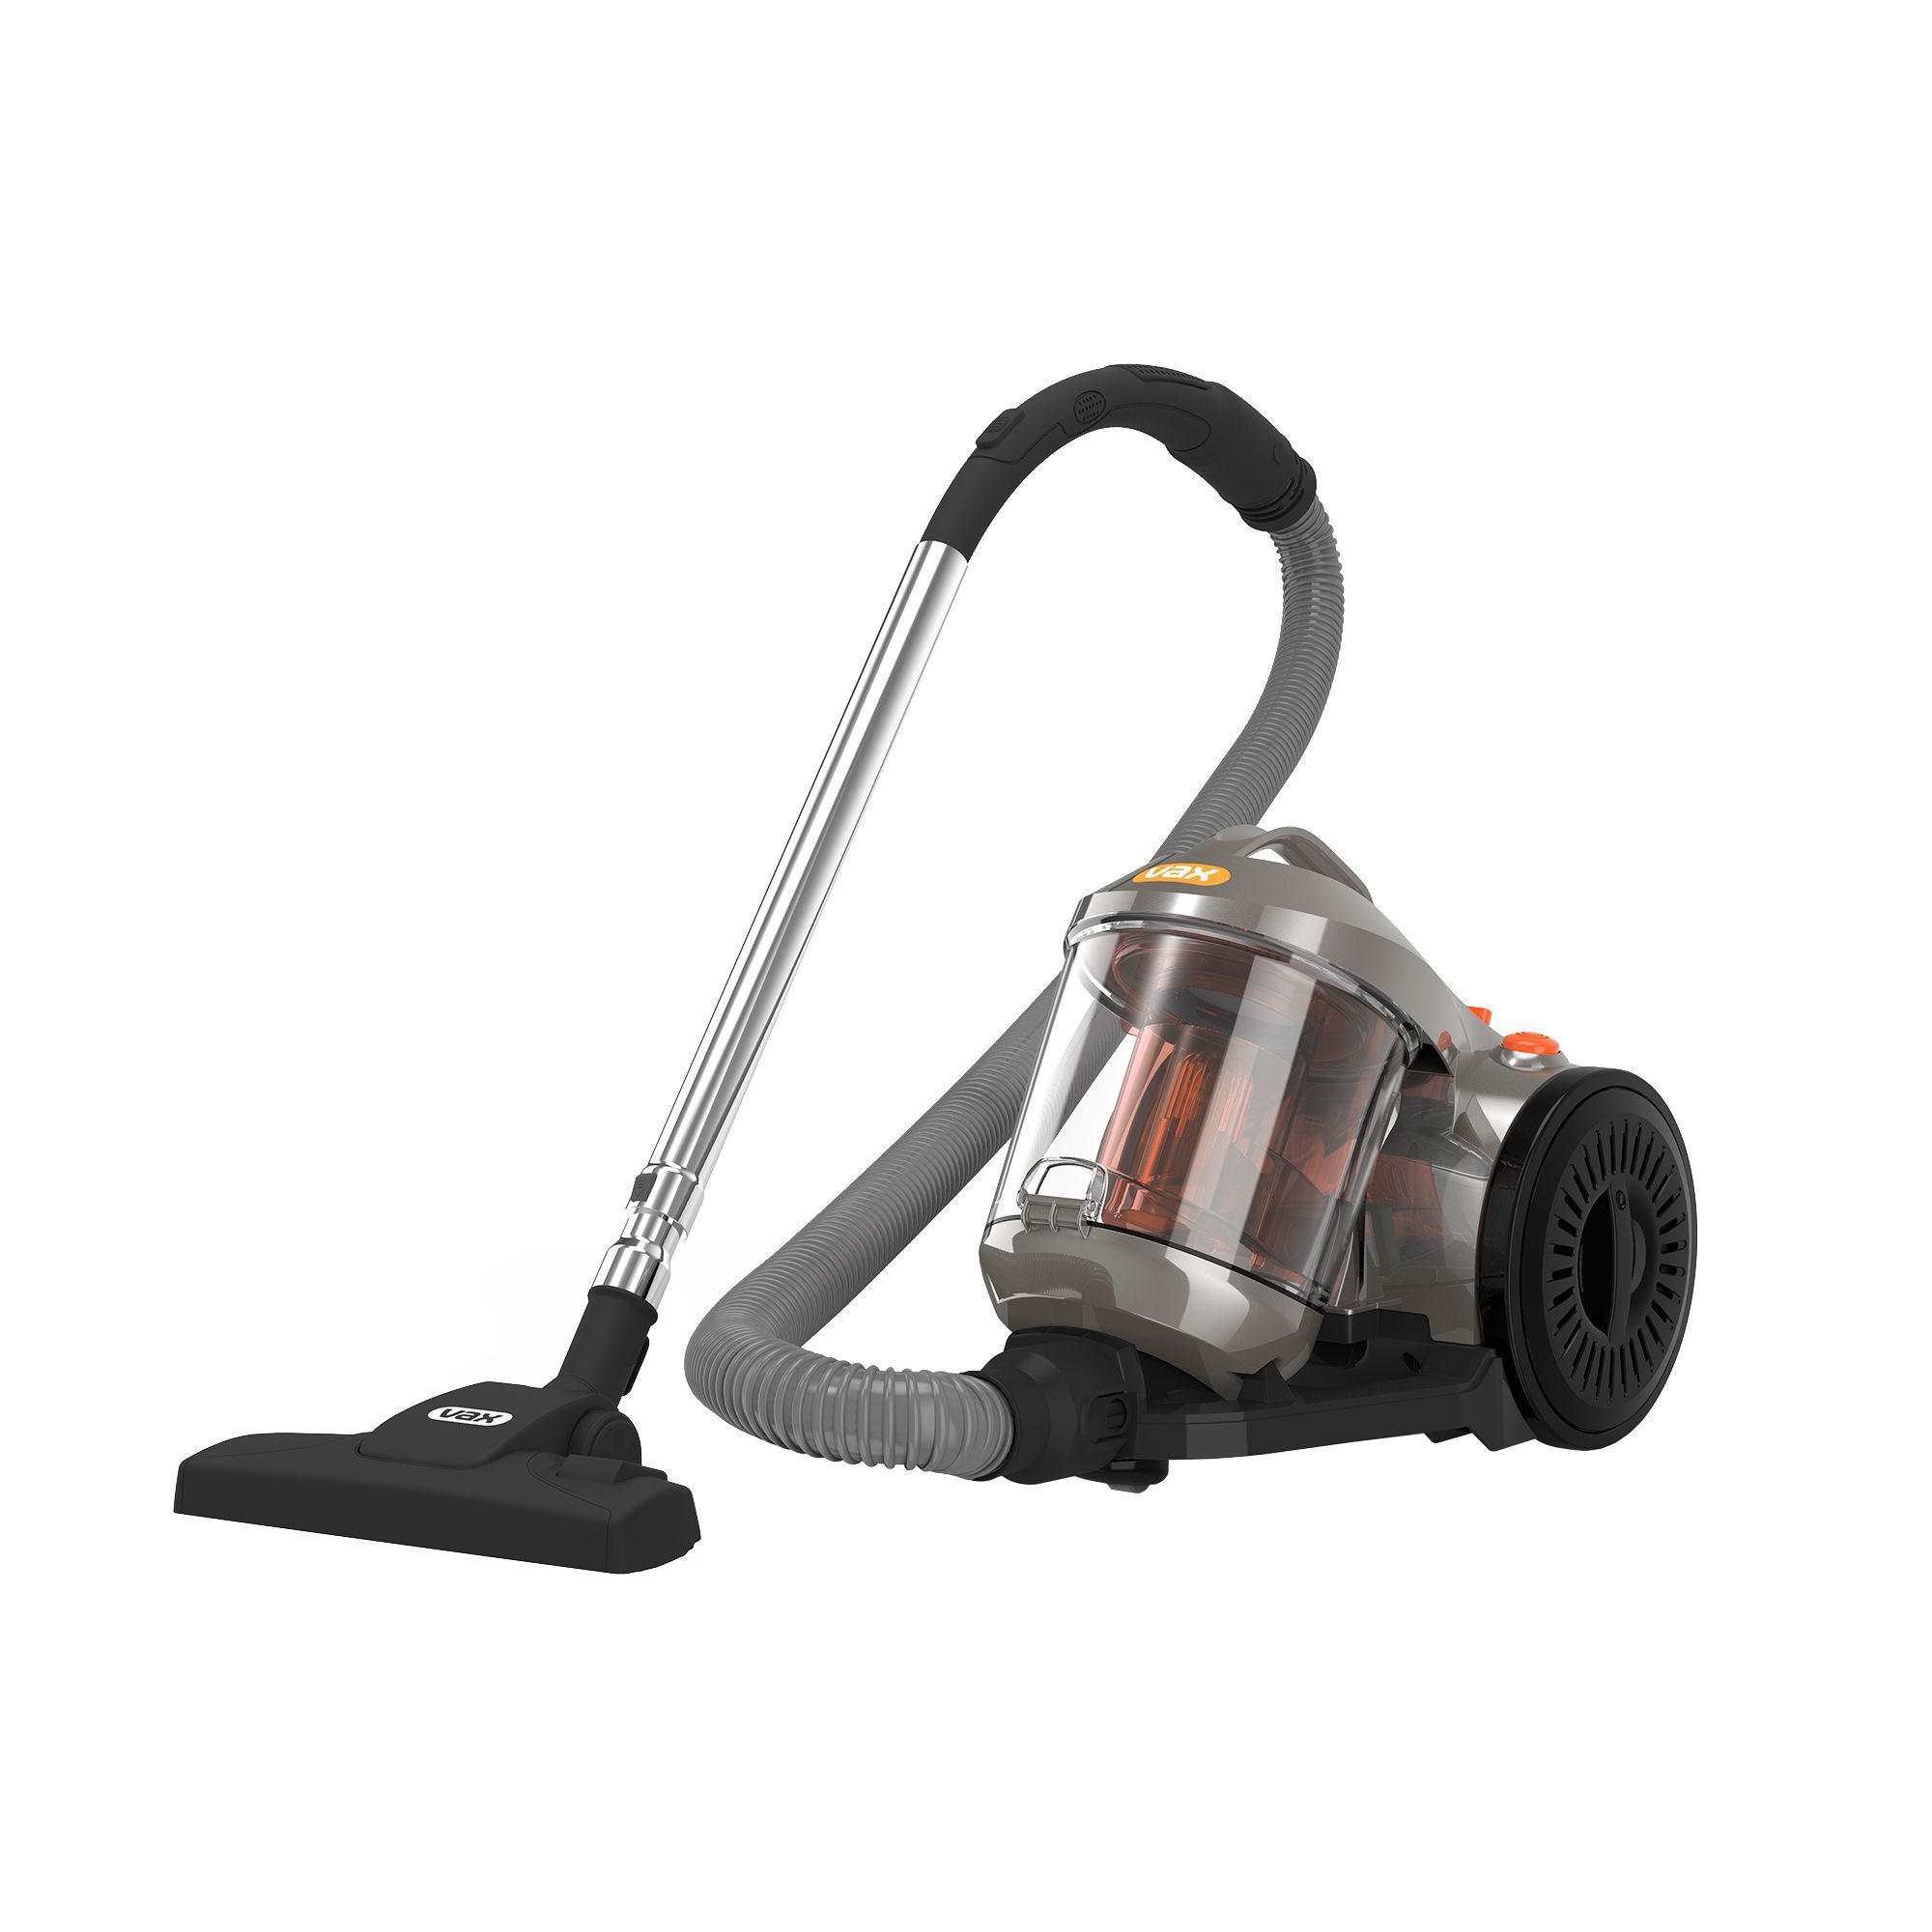 Vax Power 4 Corded Bagless Vacuum Cleaner C85-p4-be